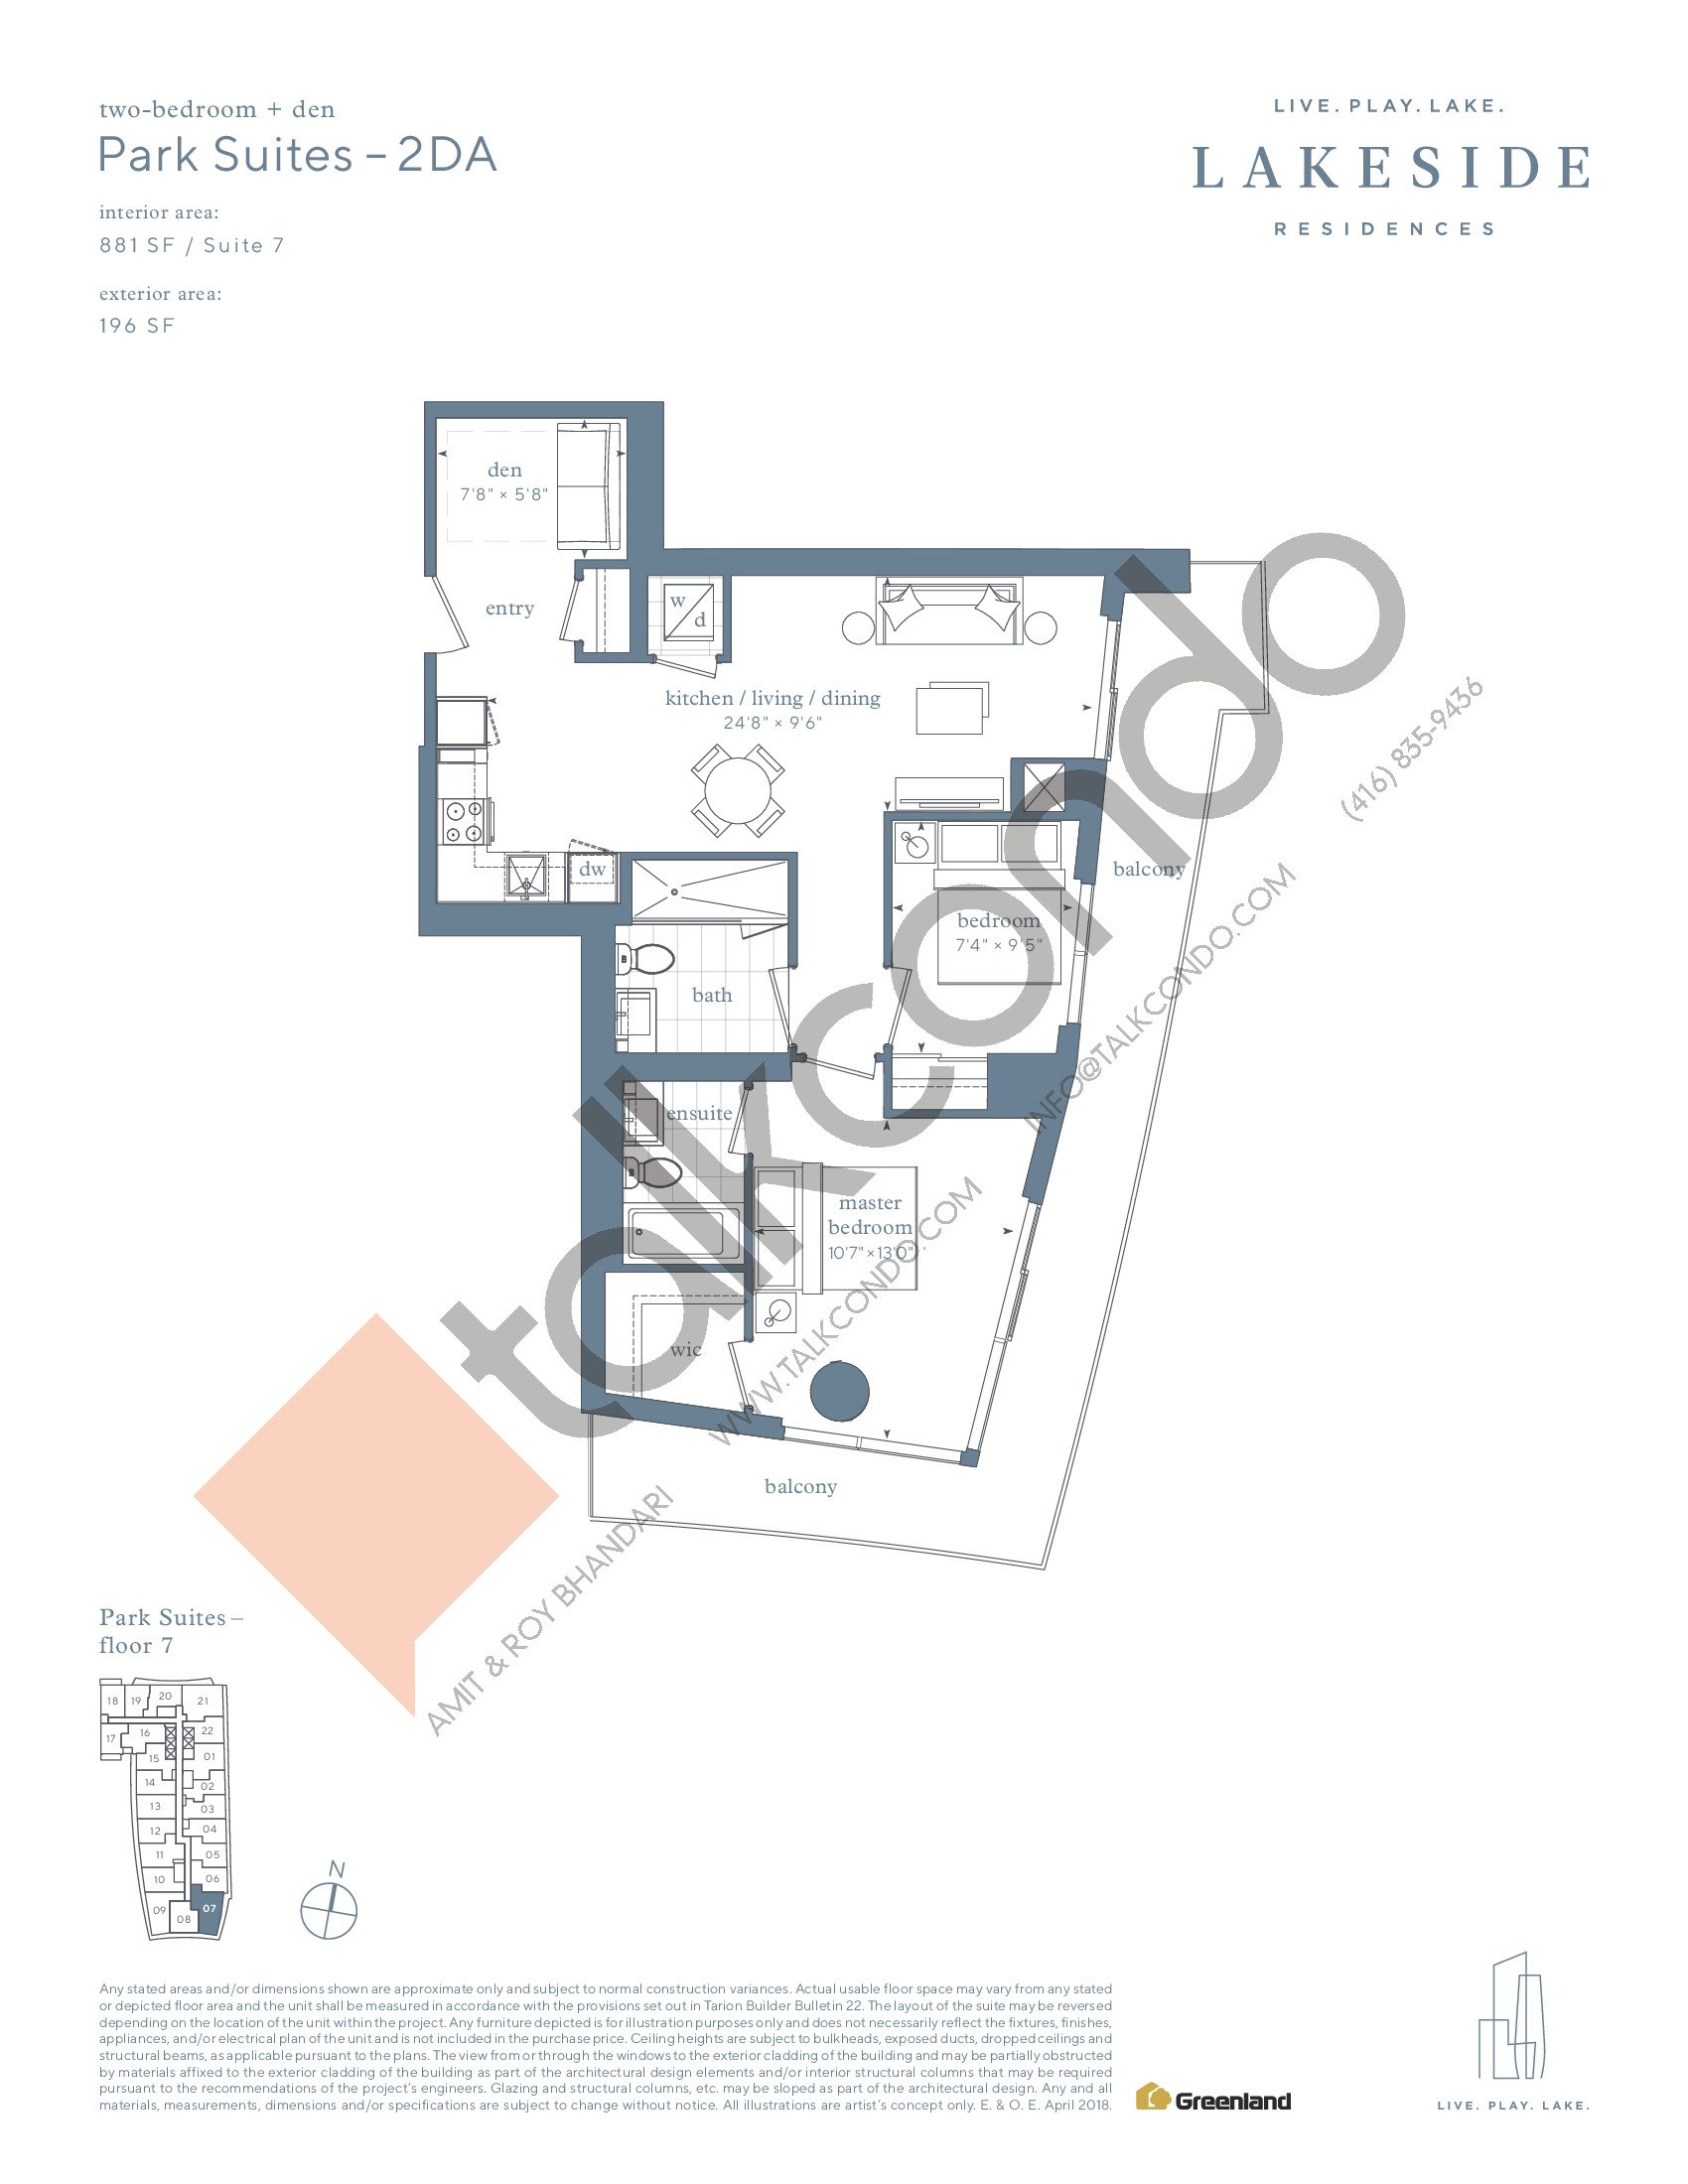 Park Suites - 2DA Floor Plan at Lakeside Residences - 881 sq.ft